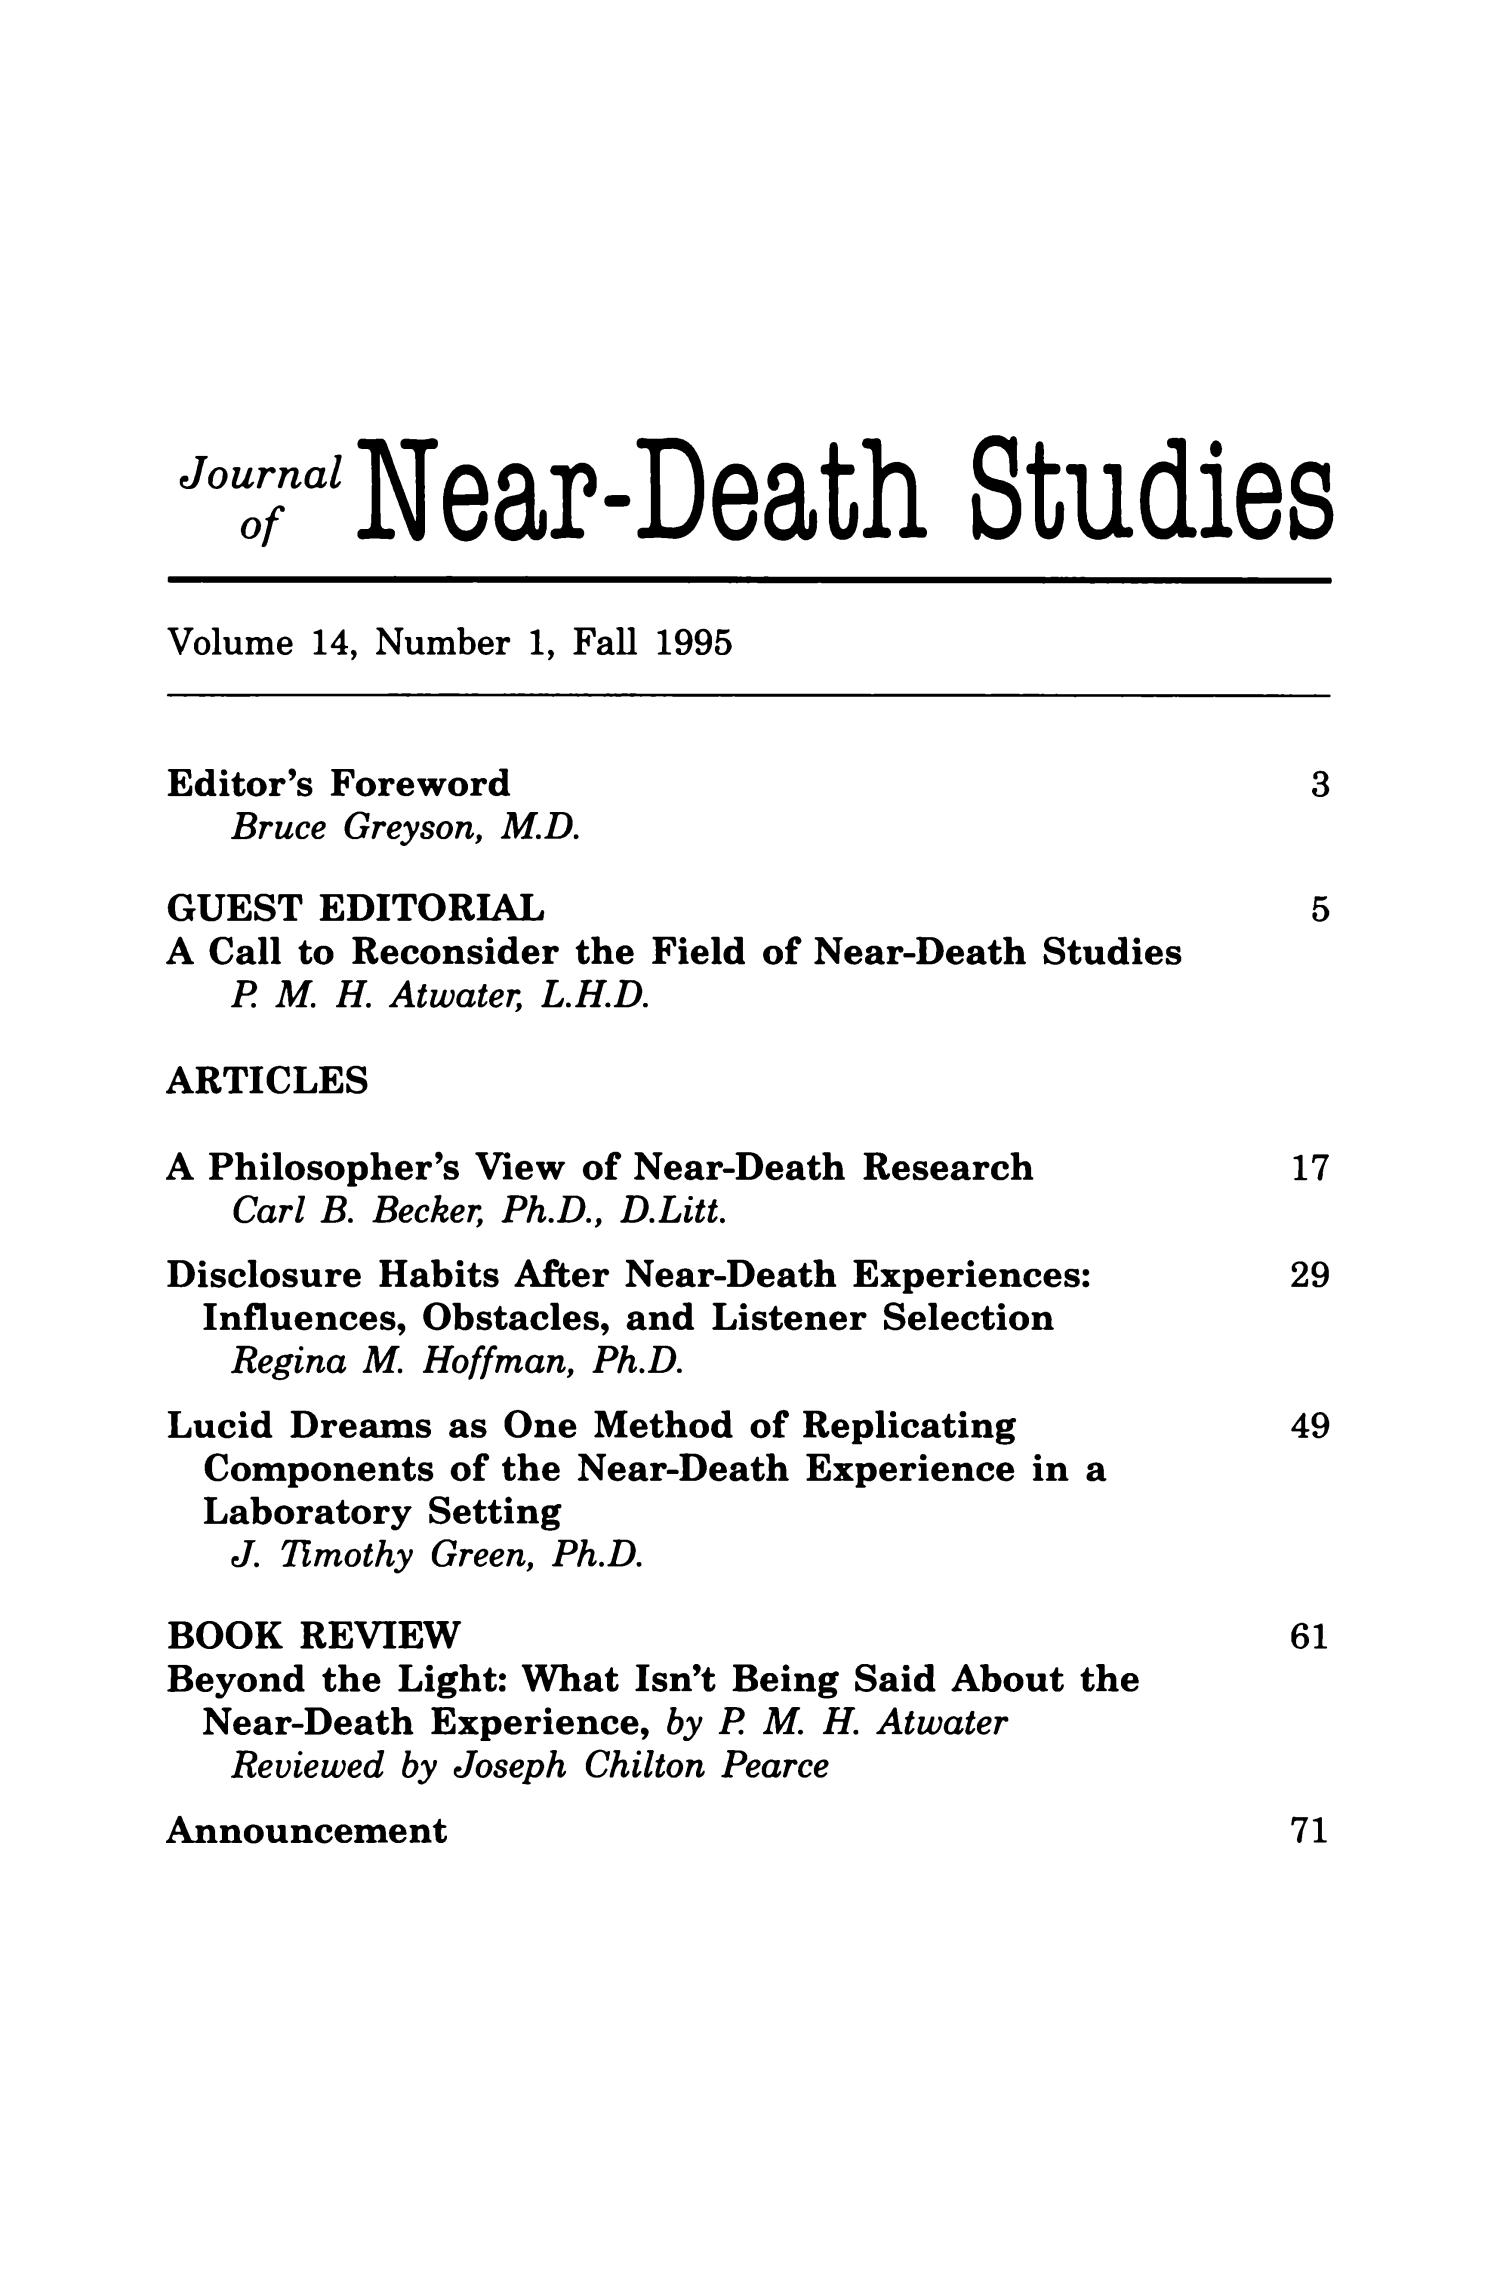 Journal of Near-Death Studies, Volume 14, Number 1, Fall 1995                                                                                                      1